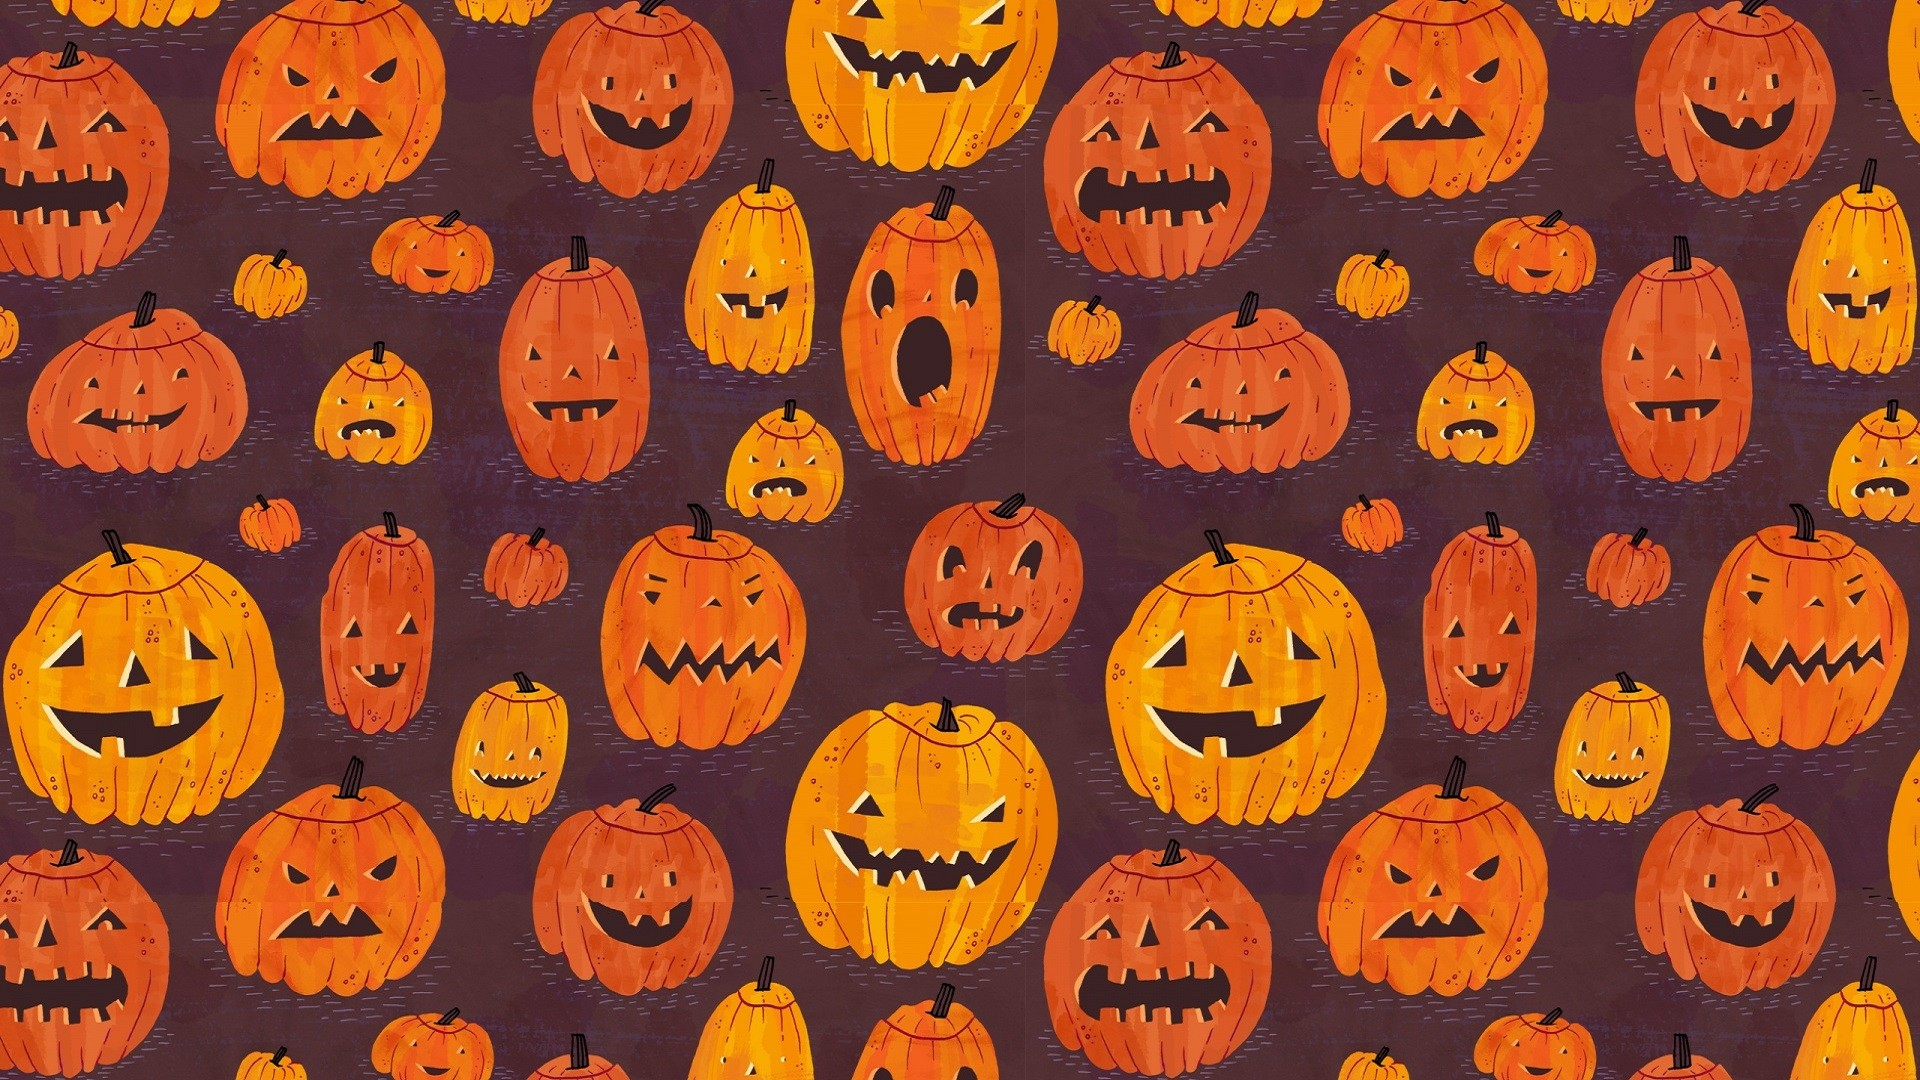 Spooky Halloween Backgrounds From Tumblr – Festival Collections